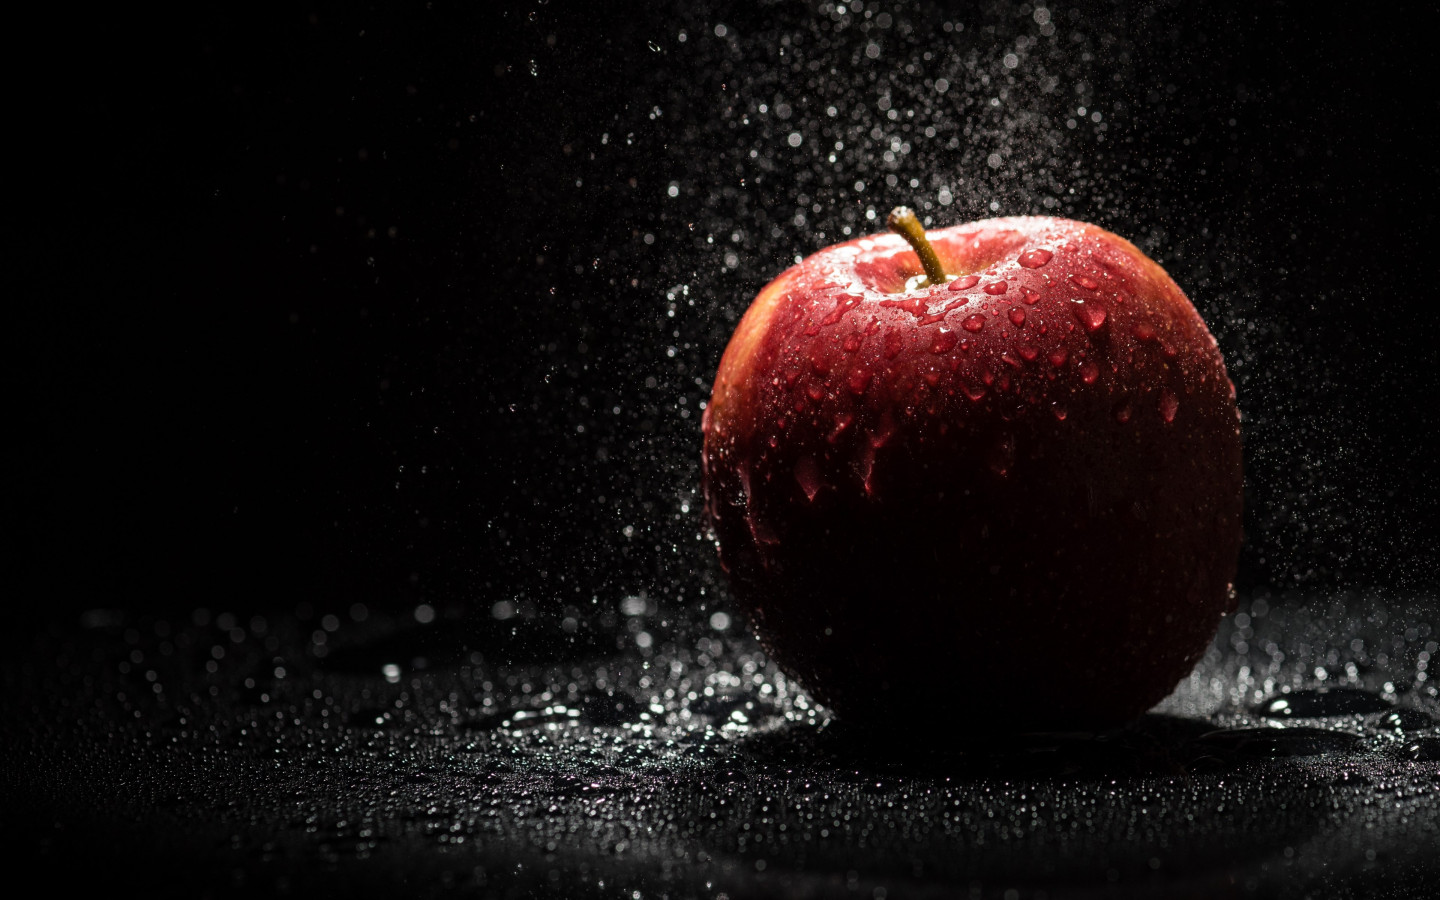 The apple, natural red apple | 1440x900 wallpaper